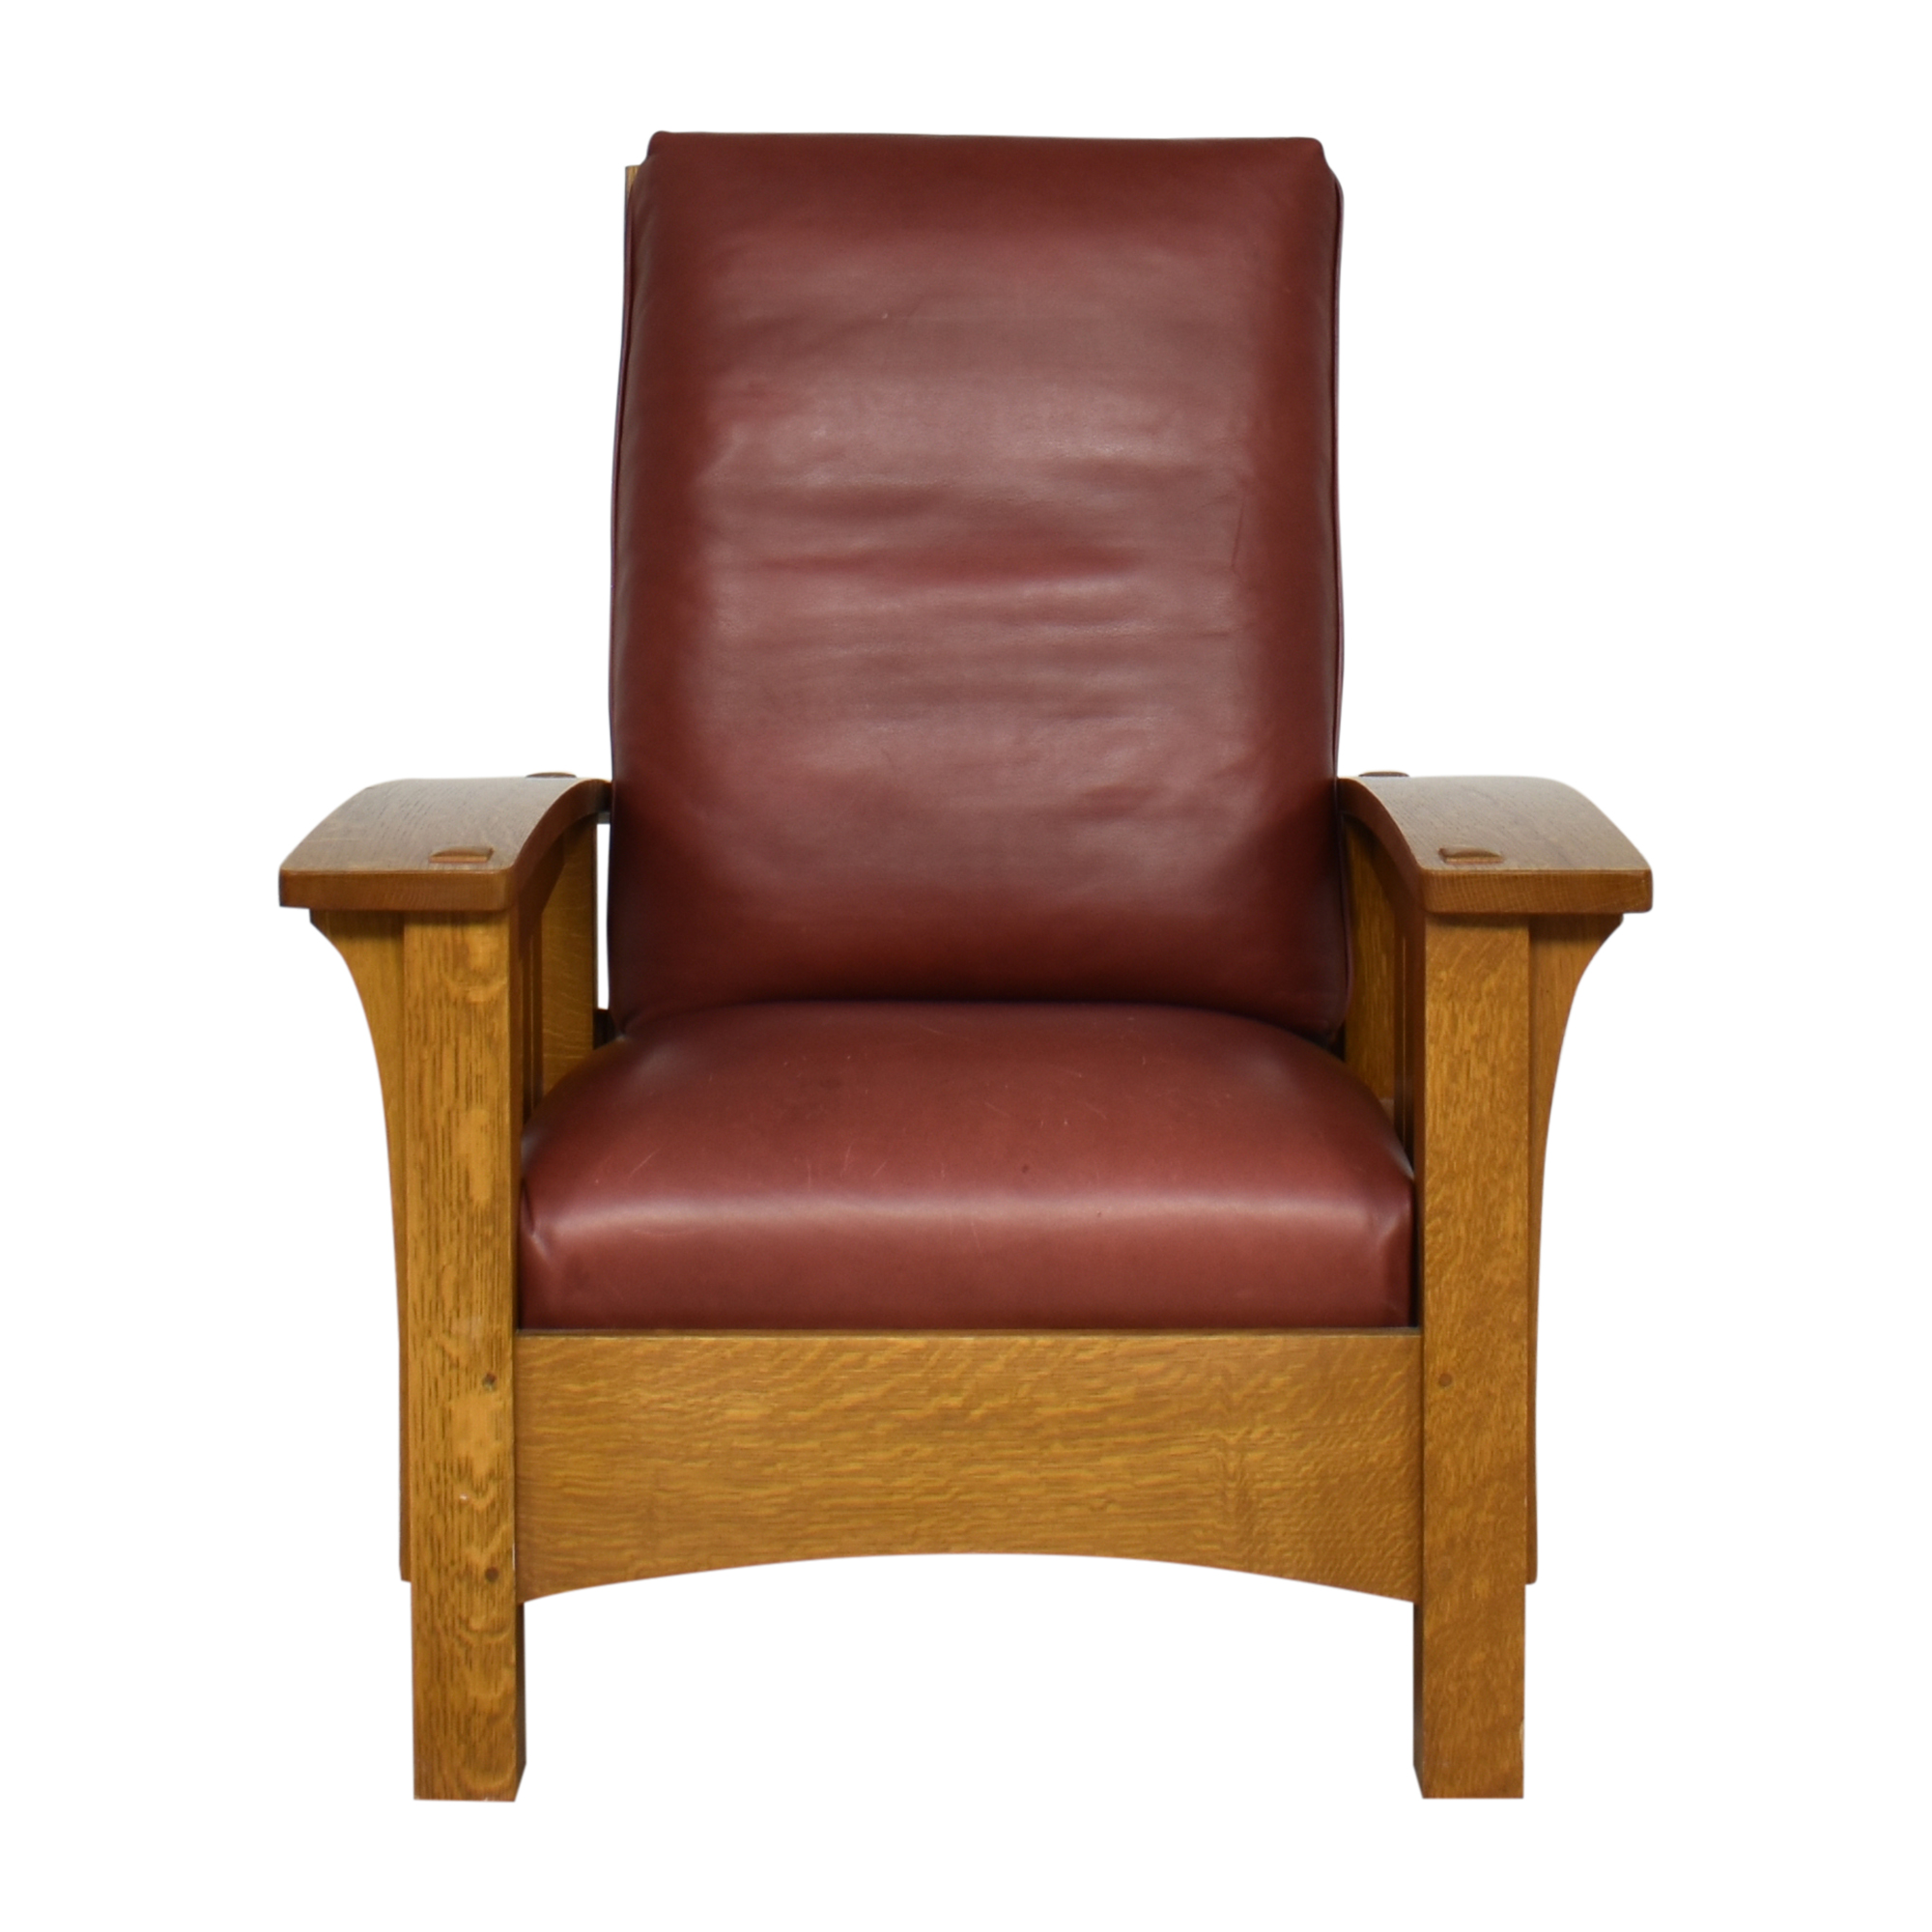 shop Stickley Mission Collection Bow Arm Morris Chair Stickley Furniture Chairs